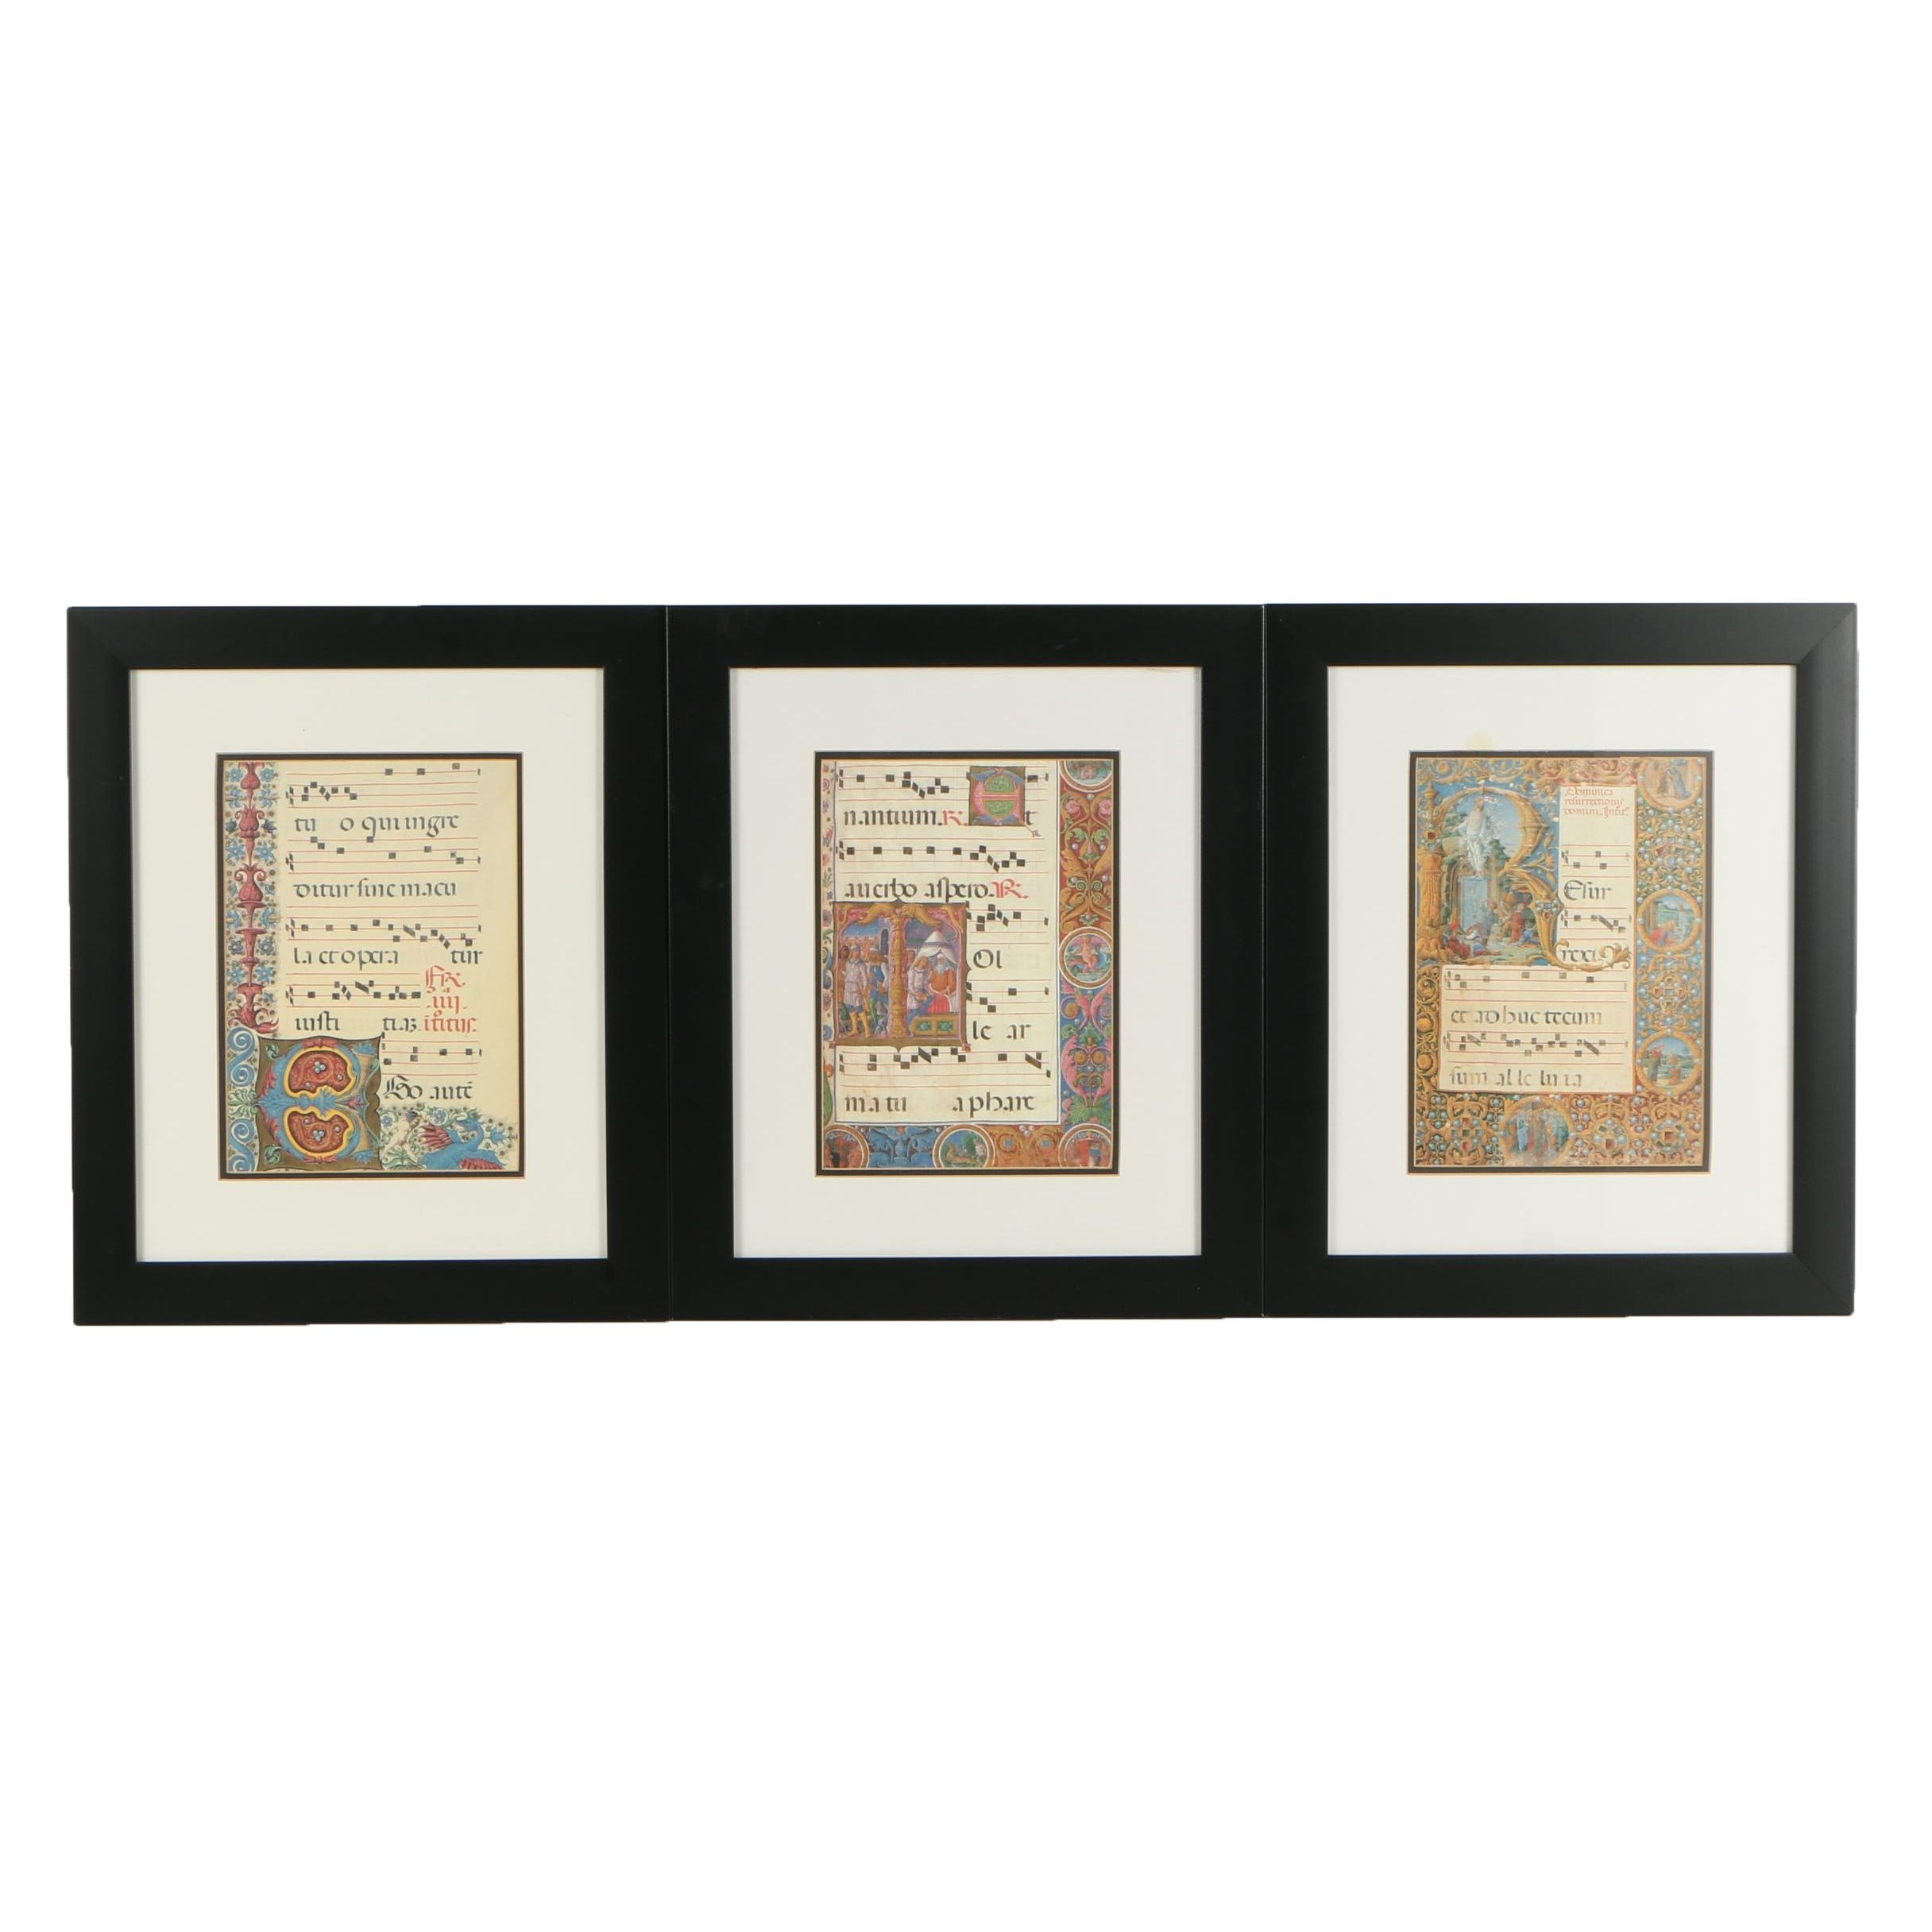 Offset Lithographs After Illuminated Manuscript Pages